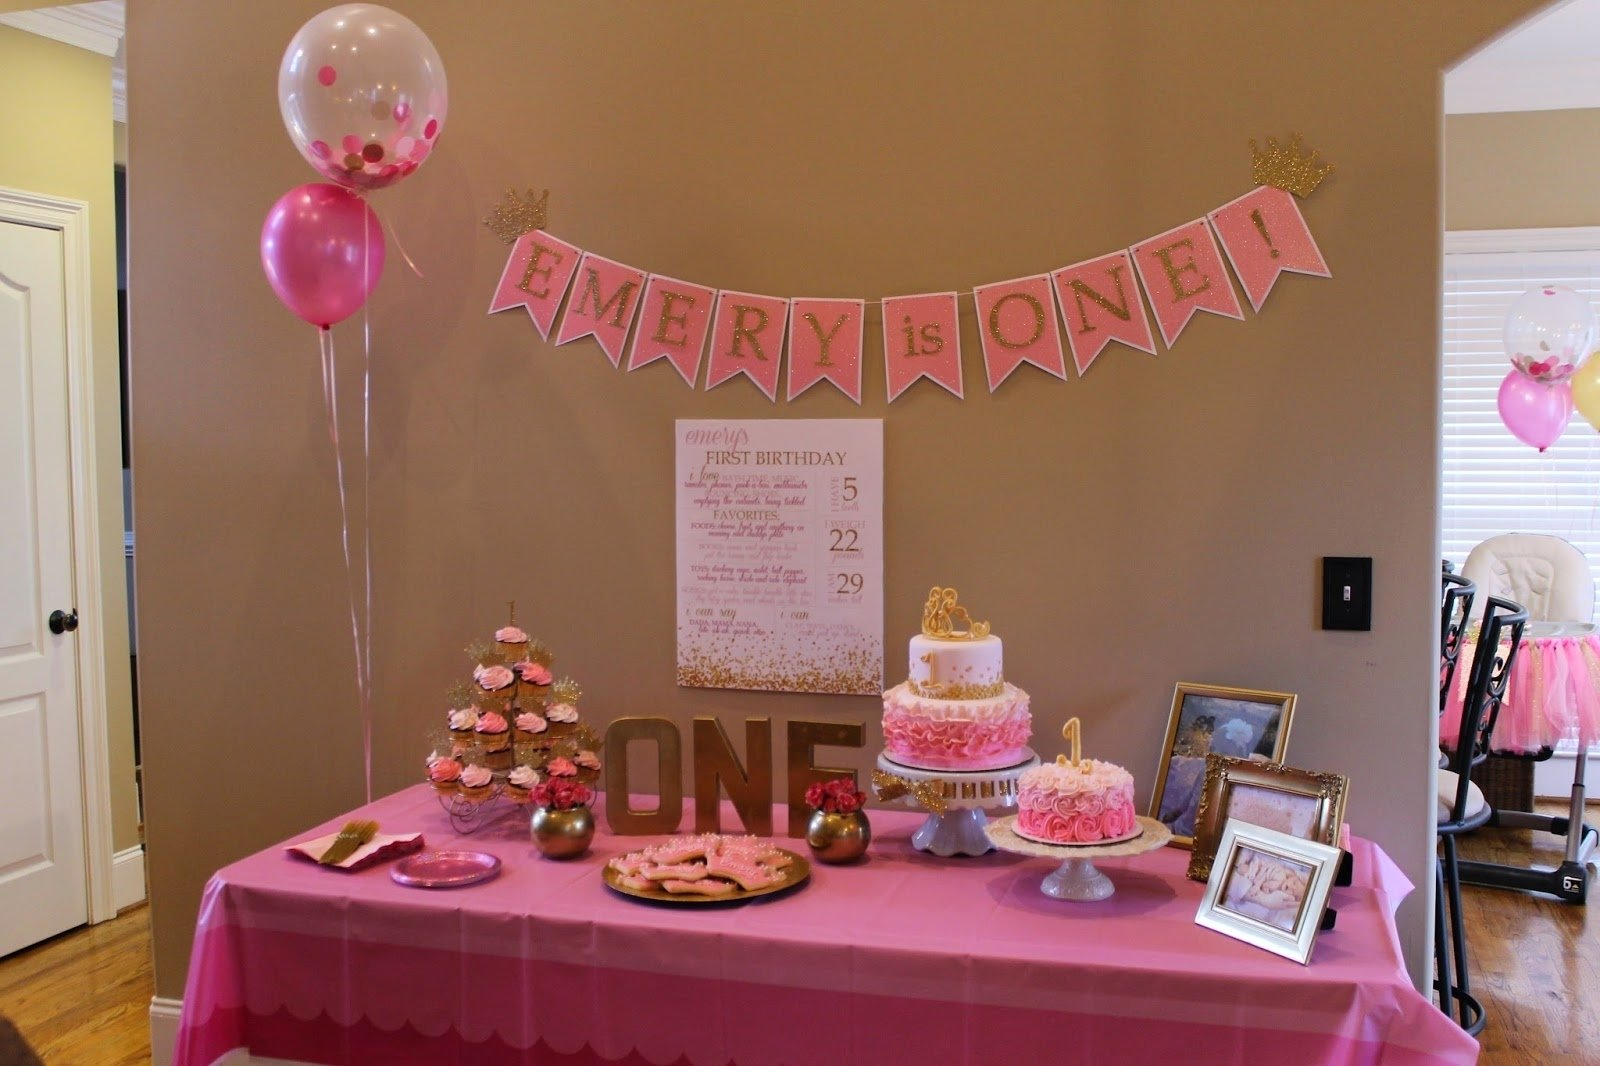 10 Attractive 1St Birthday Princess Party Ideas richly blessed emerys 1st birthday party 1 2021